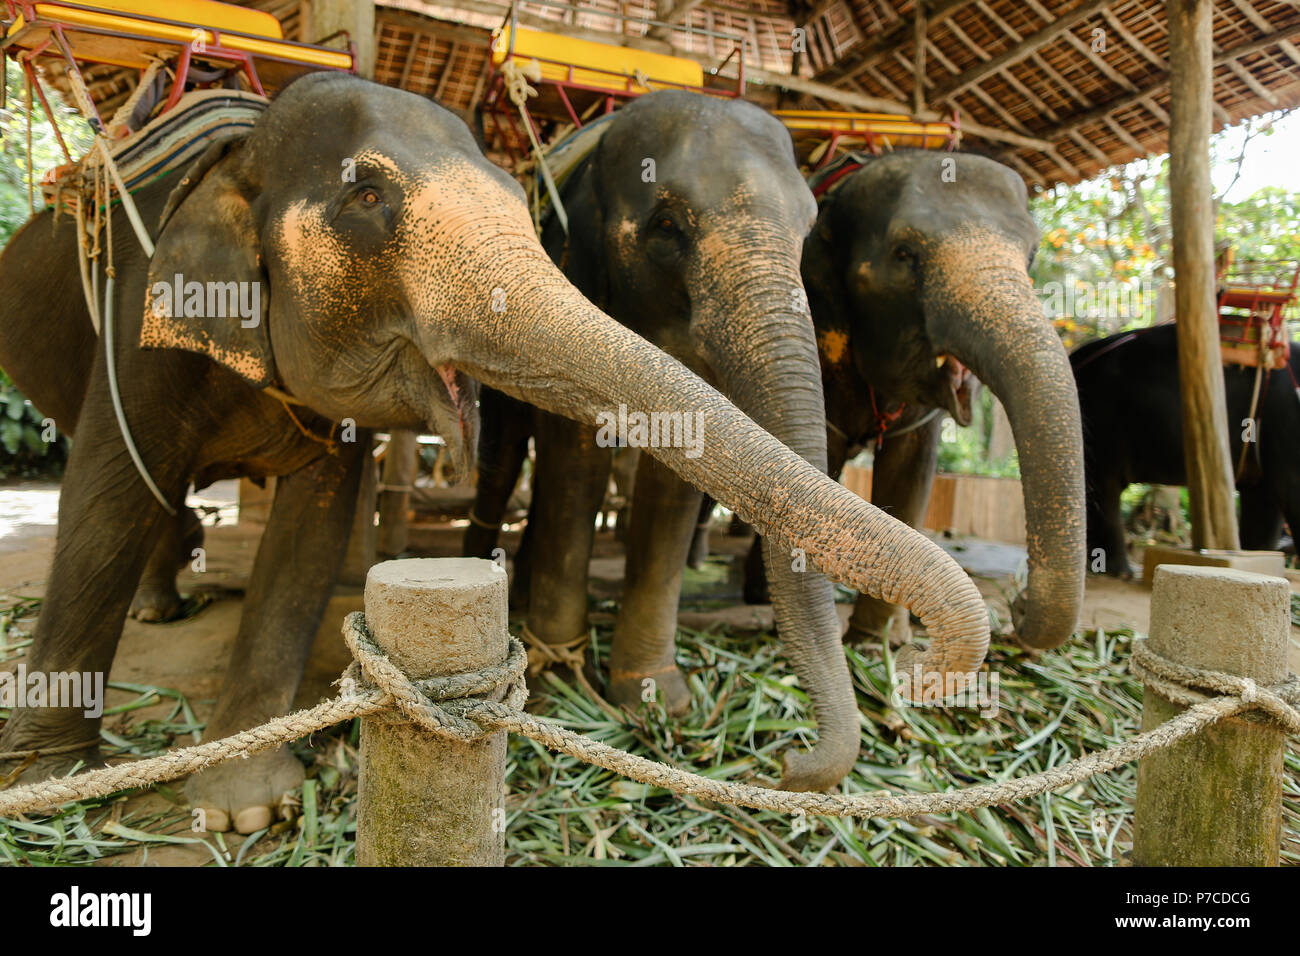 Tamed elephants with yellow saddles standing and waiting for tourists. - Stock Image